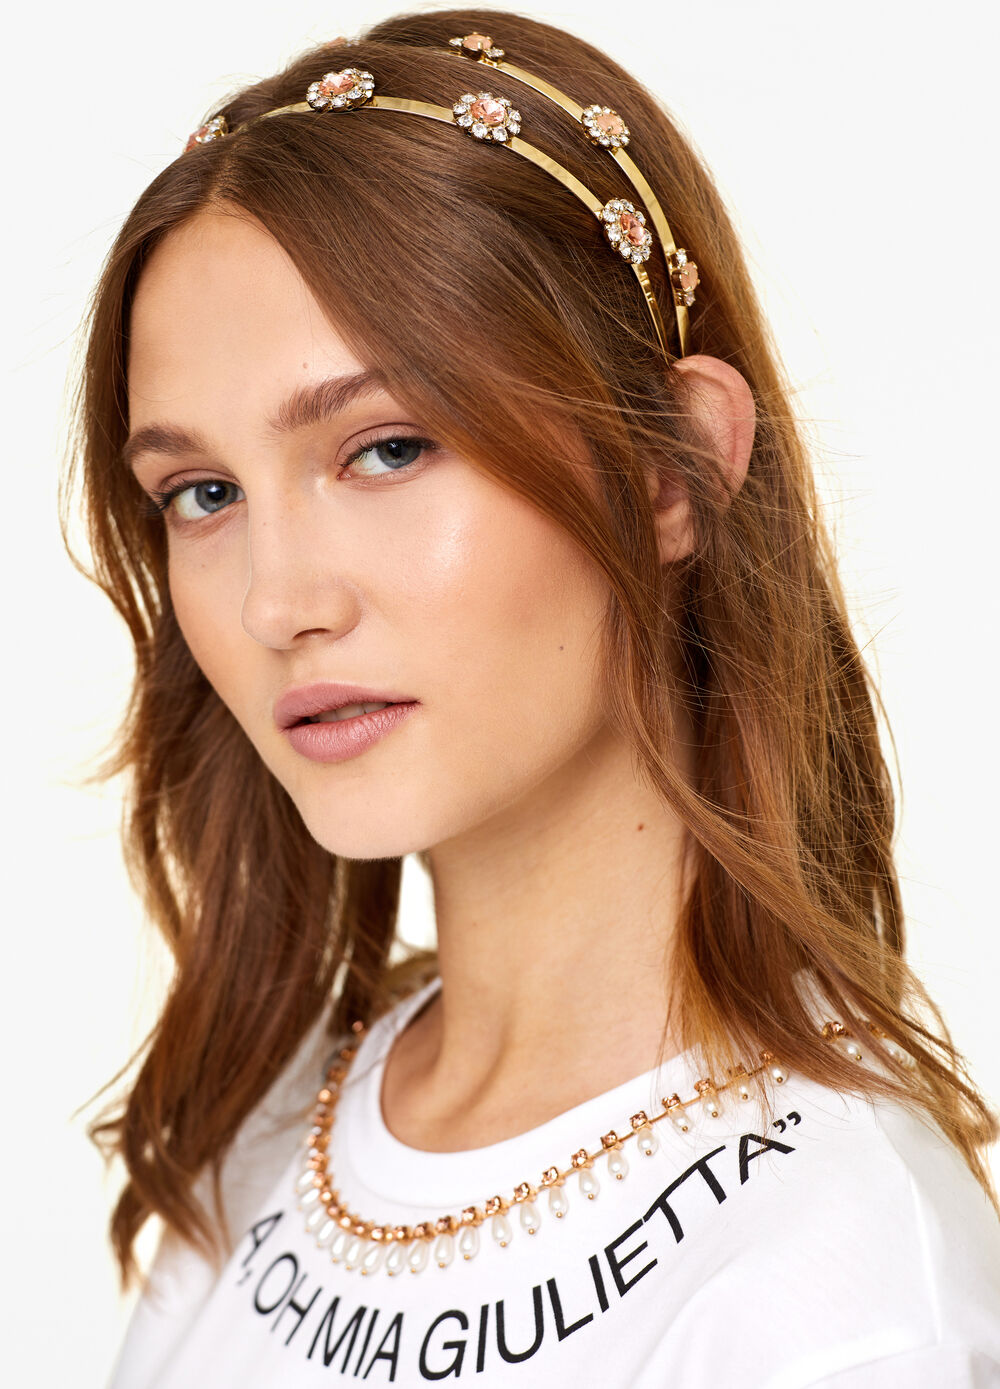 OVS Arts of Italy Giulietta headband